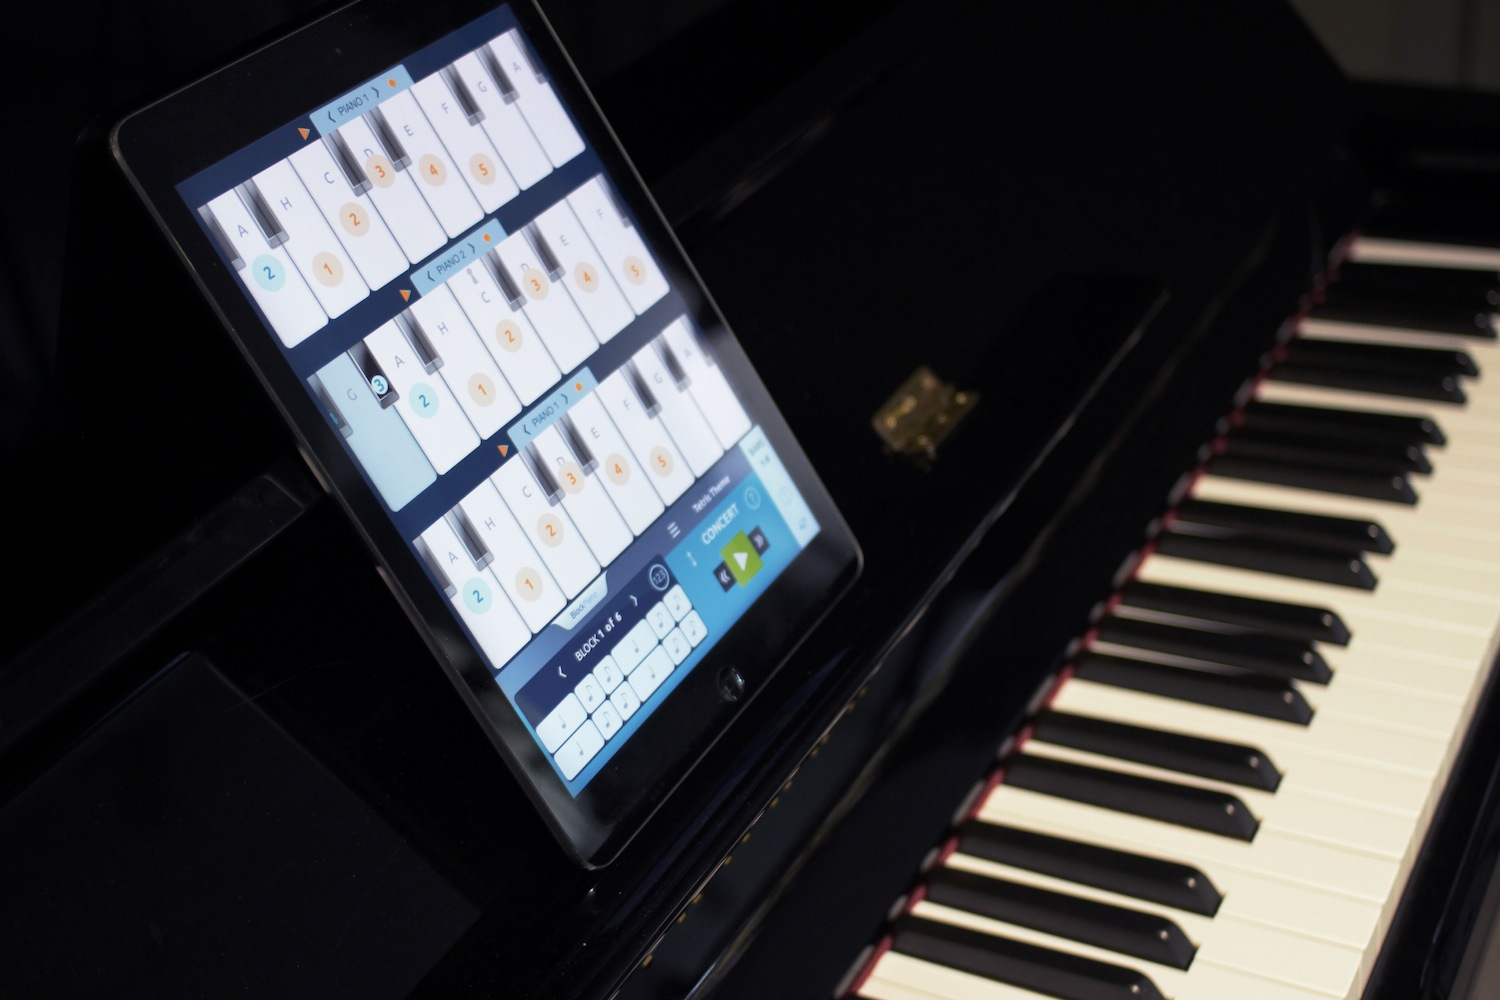 Learn to play thepiano with the help of your ipad